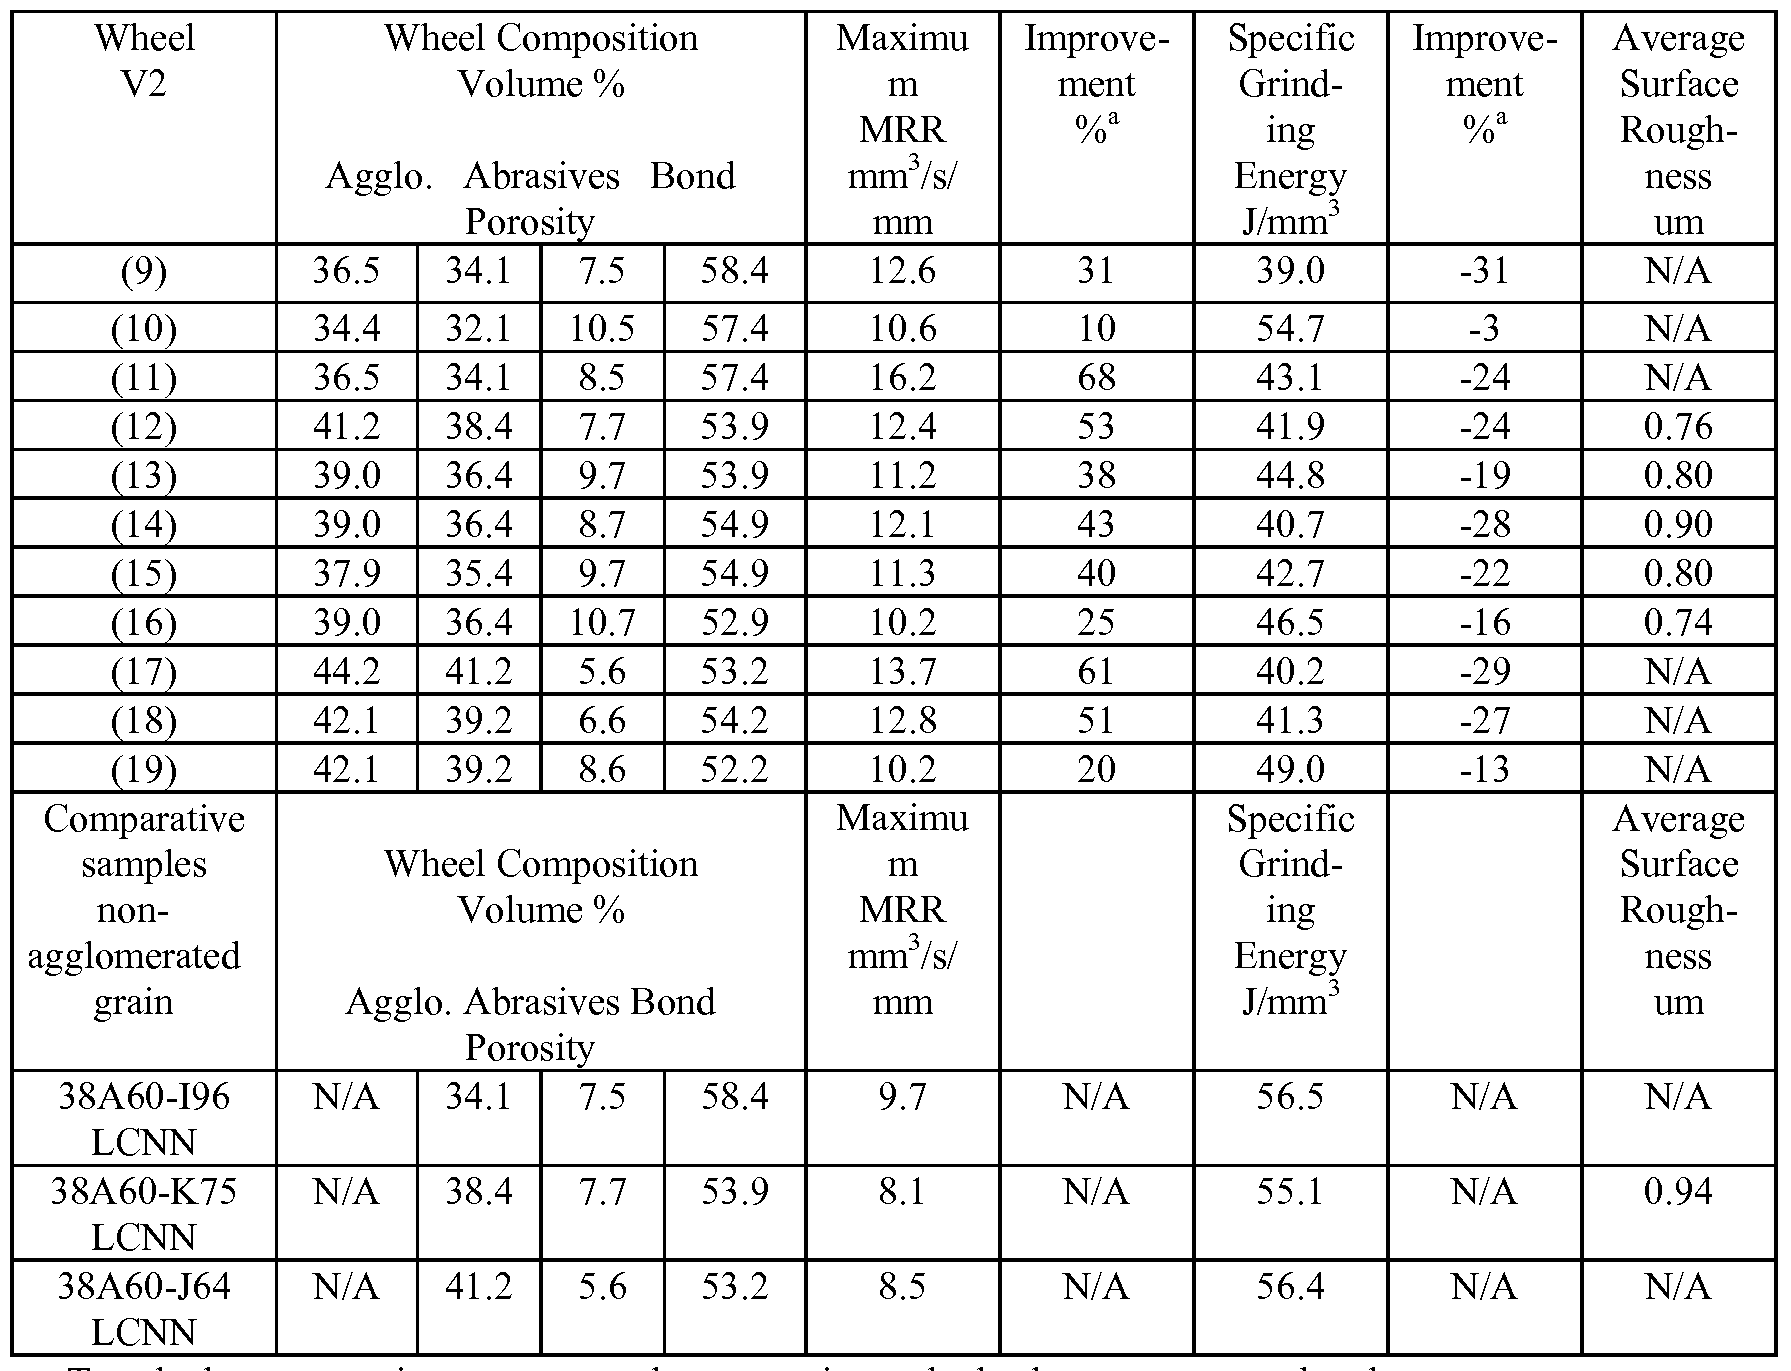 grinding wheel specification chart. patent wo2009046091a1 - abrasive articles with novel structures and methods for grinding google patents wheel specification chart